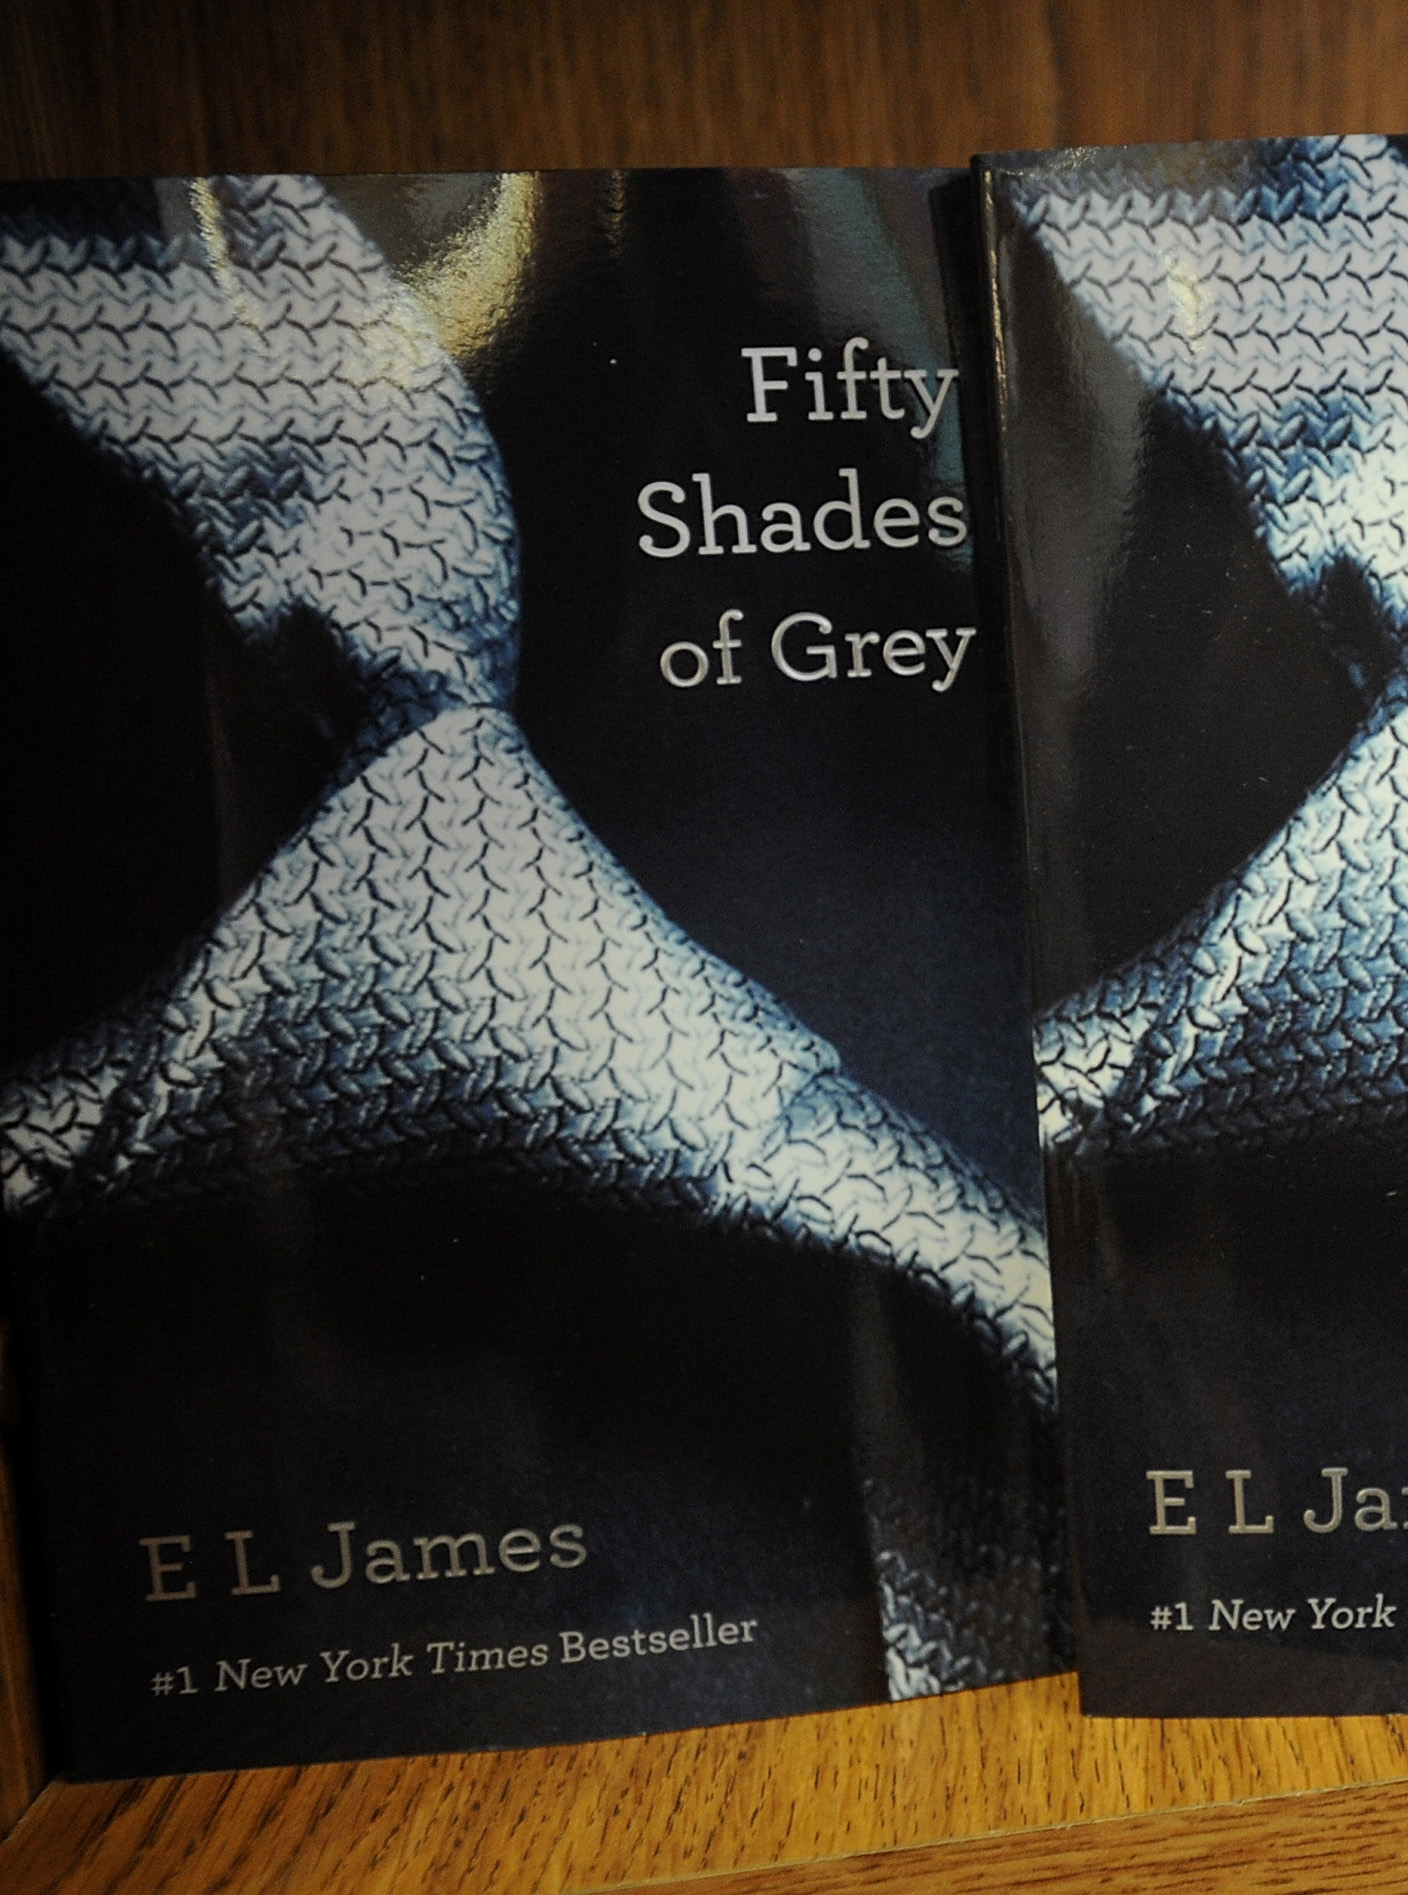 Fifty shades of grey nominated for national book award for Fifty shades of grey part two